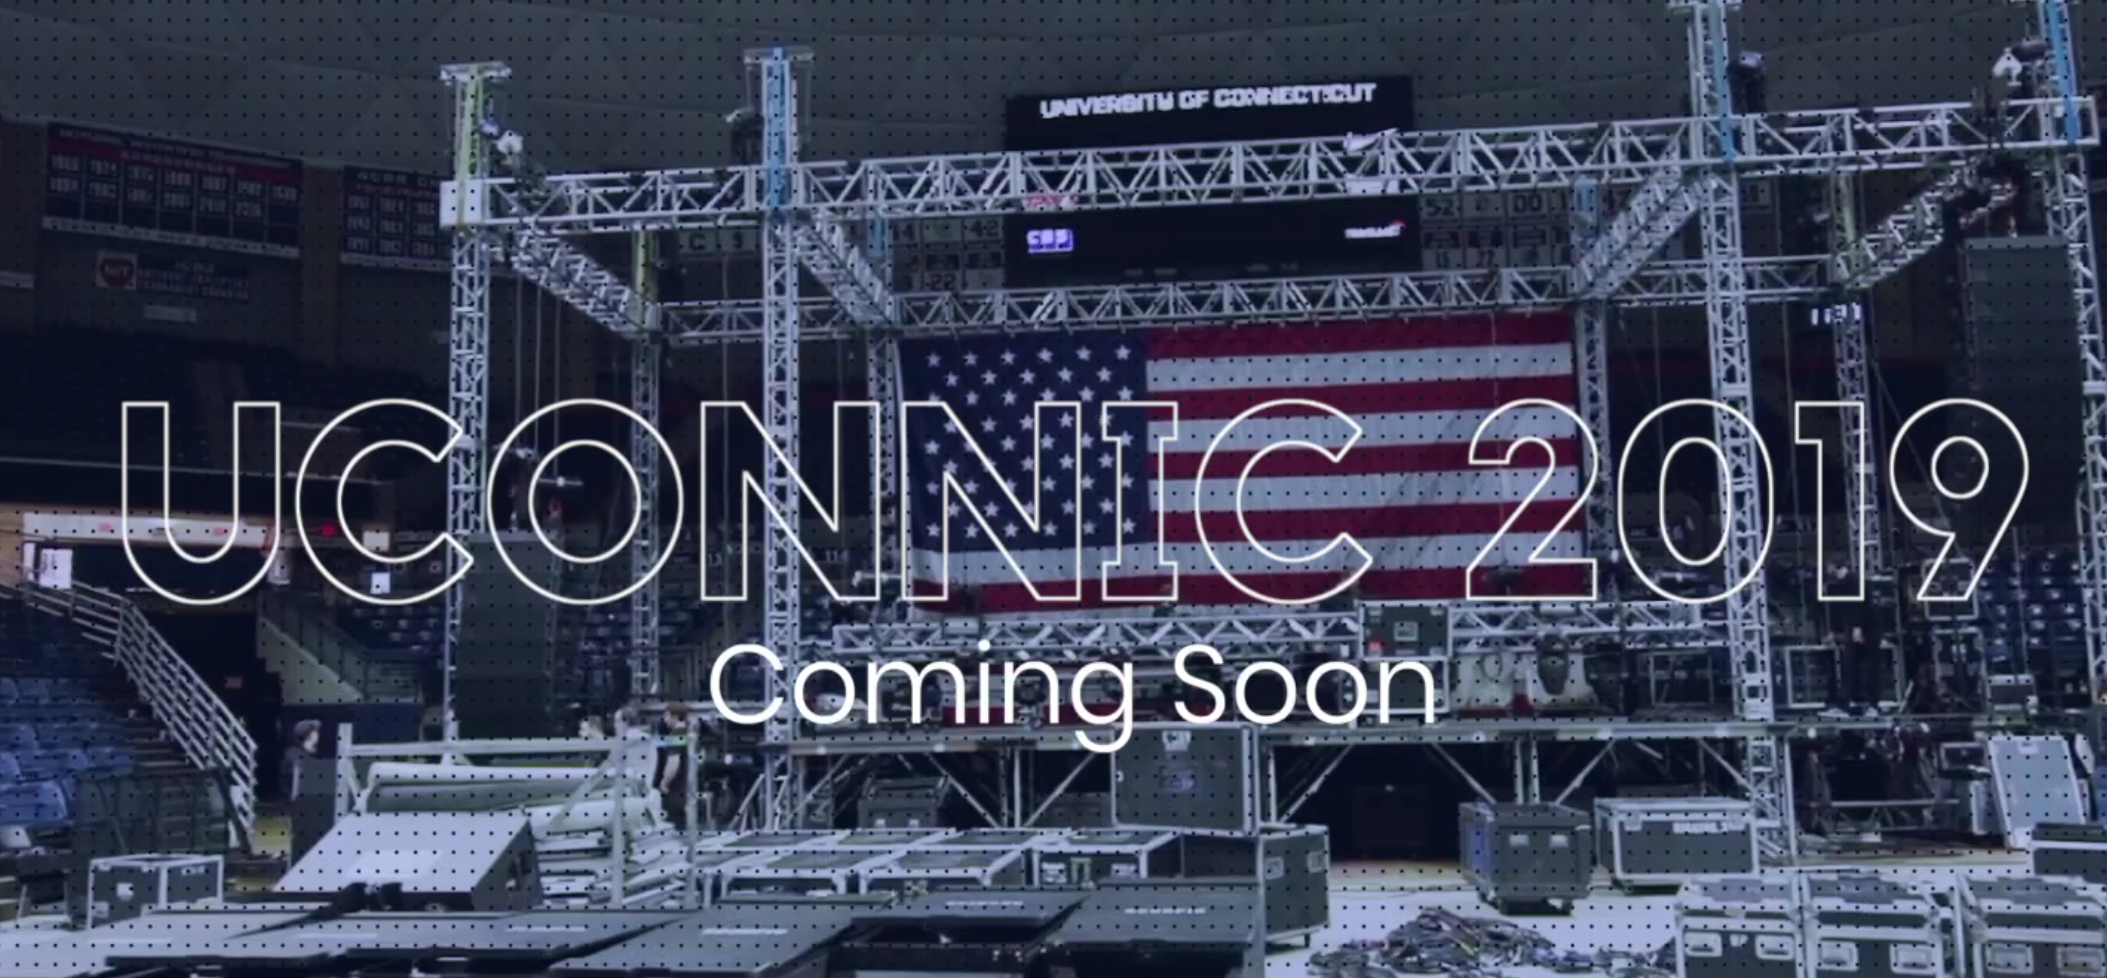 UCONNIC will take place on Thursday, April 11 in Gampel Pavilion. Student tickets will be between $20-$75 and can be purchased currently through the presale or regular sale beginning later today at tickets.subog.uconn.edu. (Screenshot via  website )